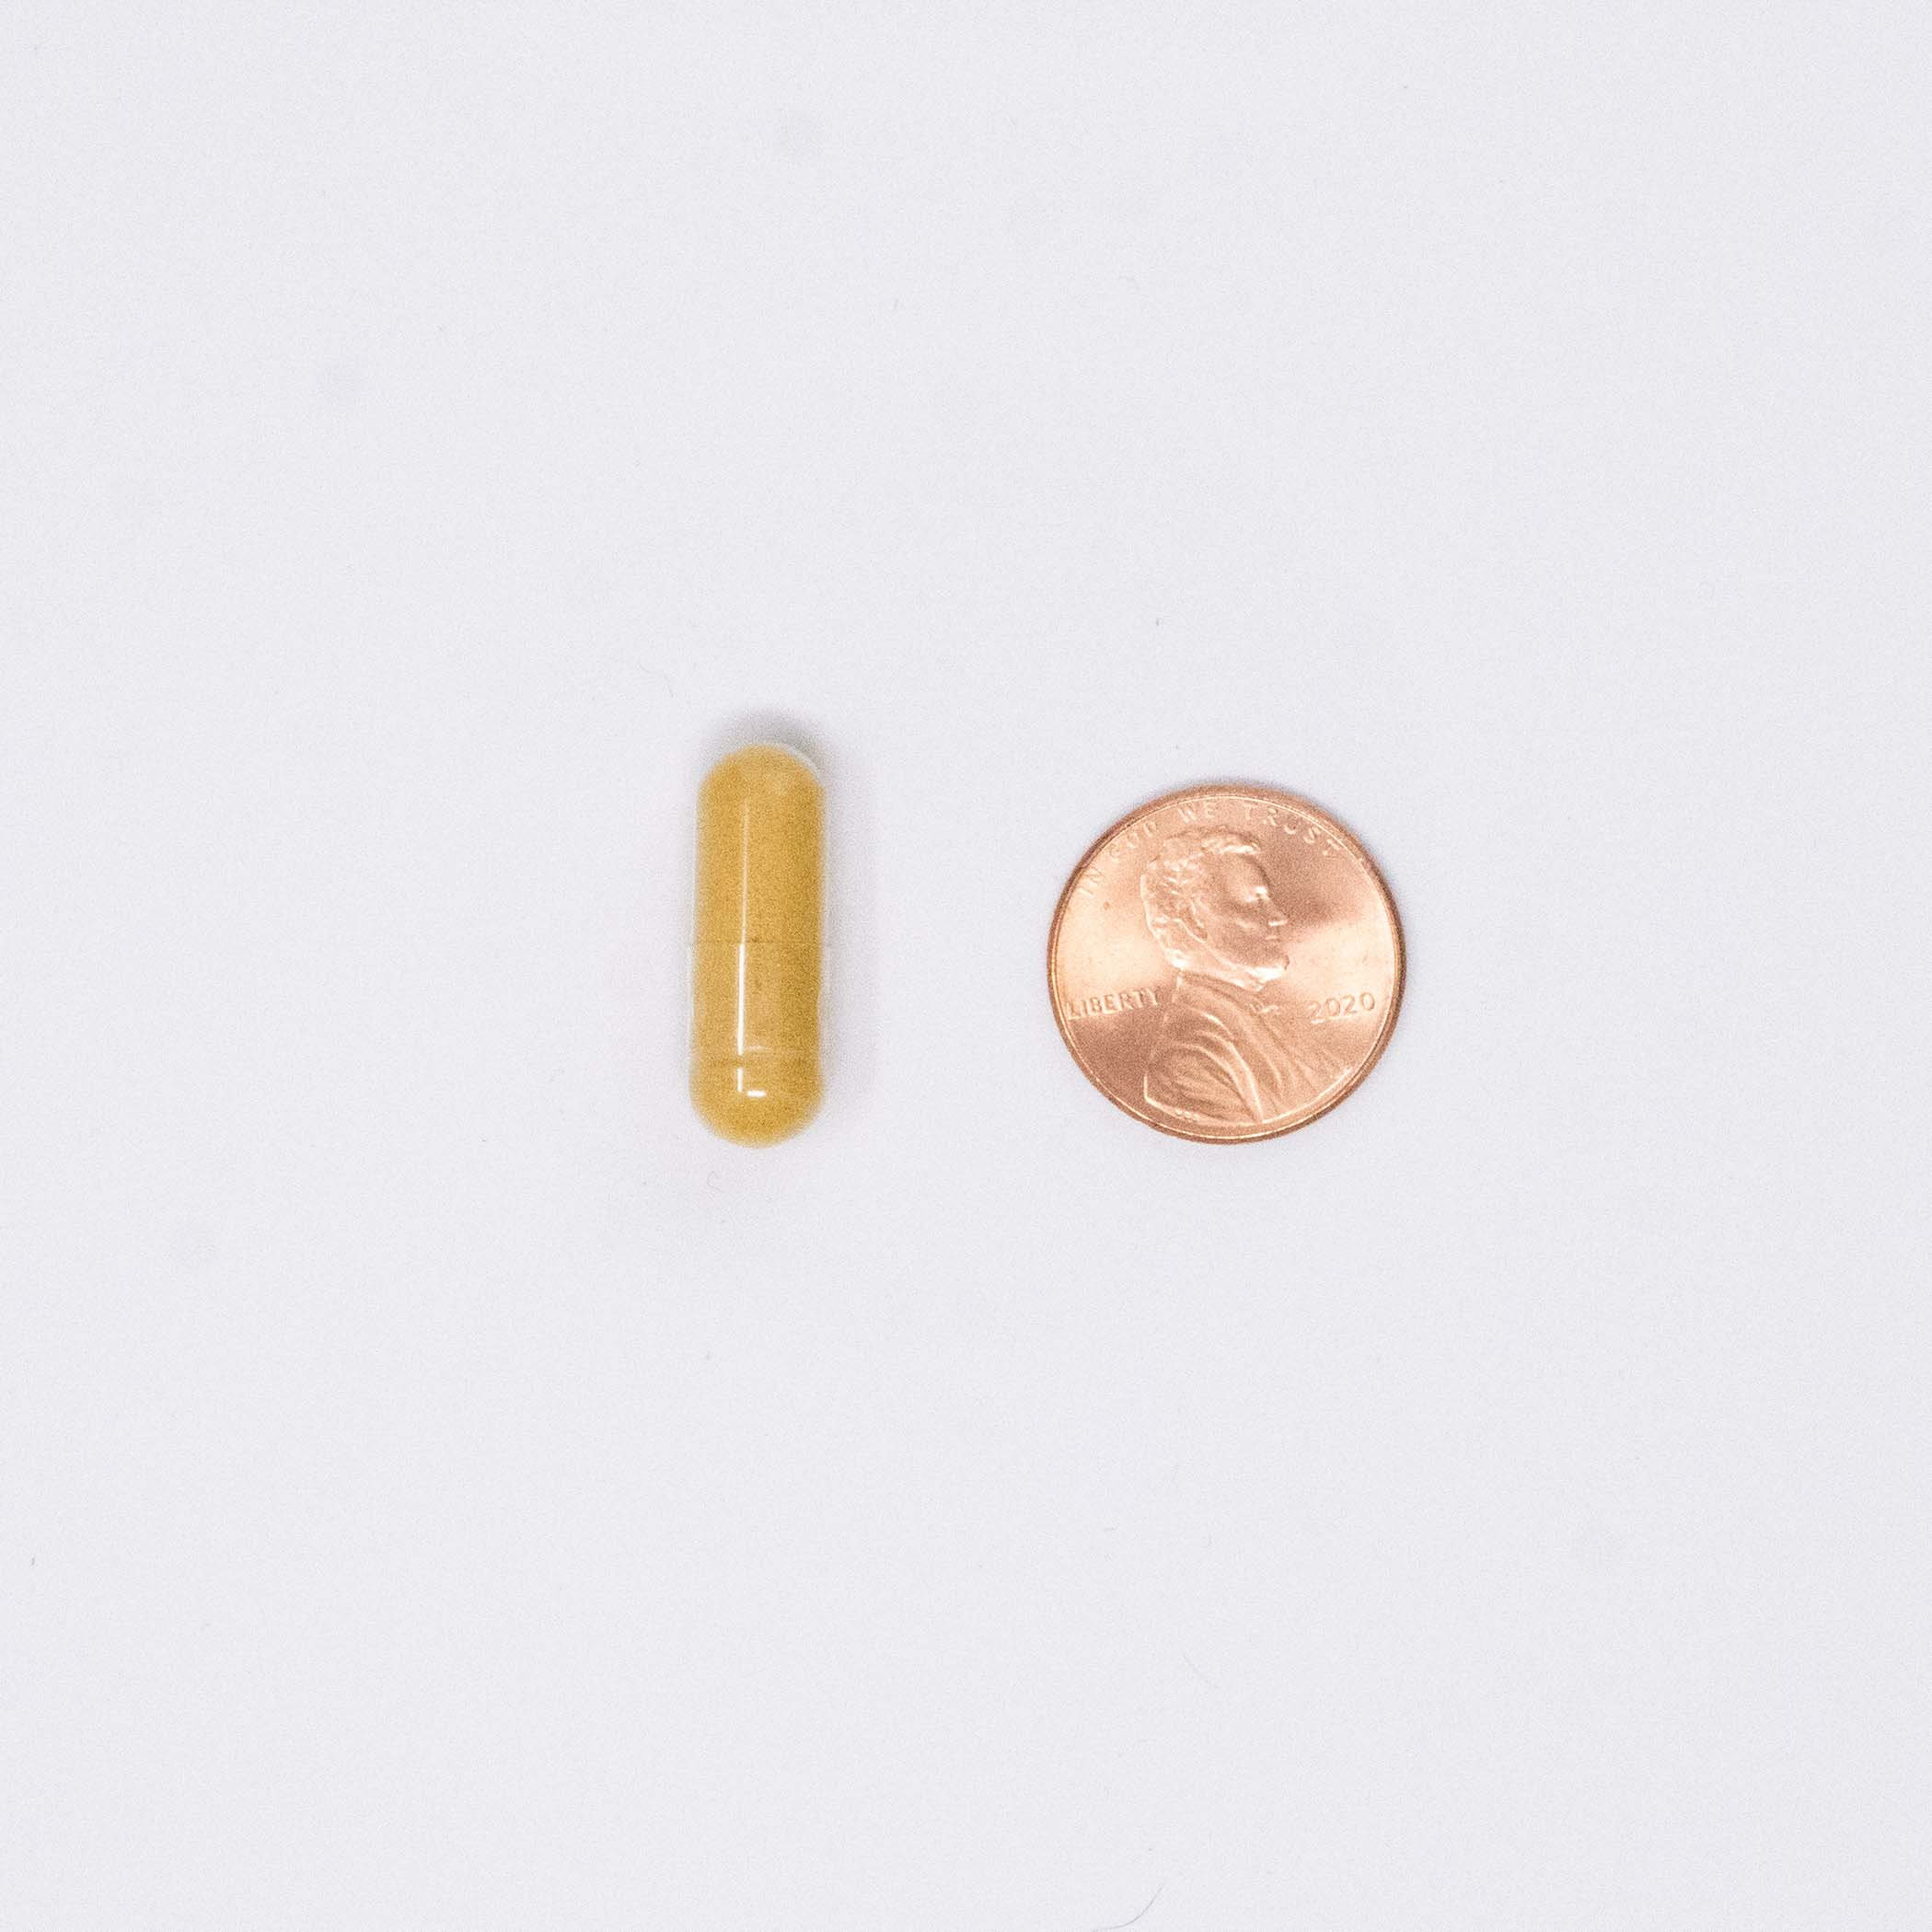 CoQ10 vitamin next to a penny